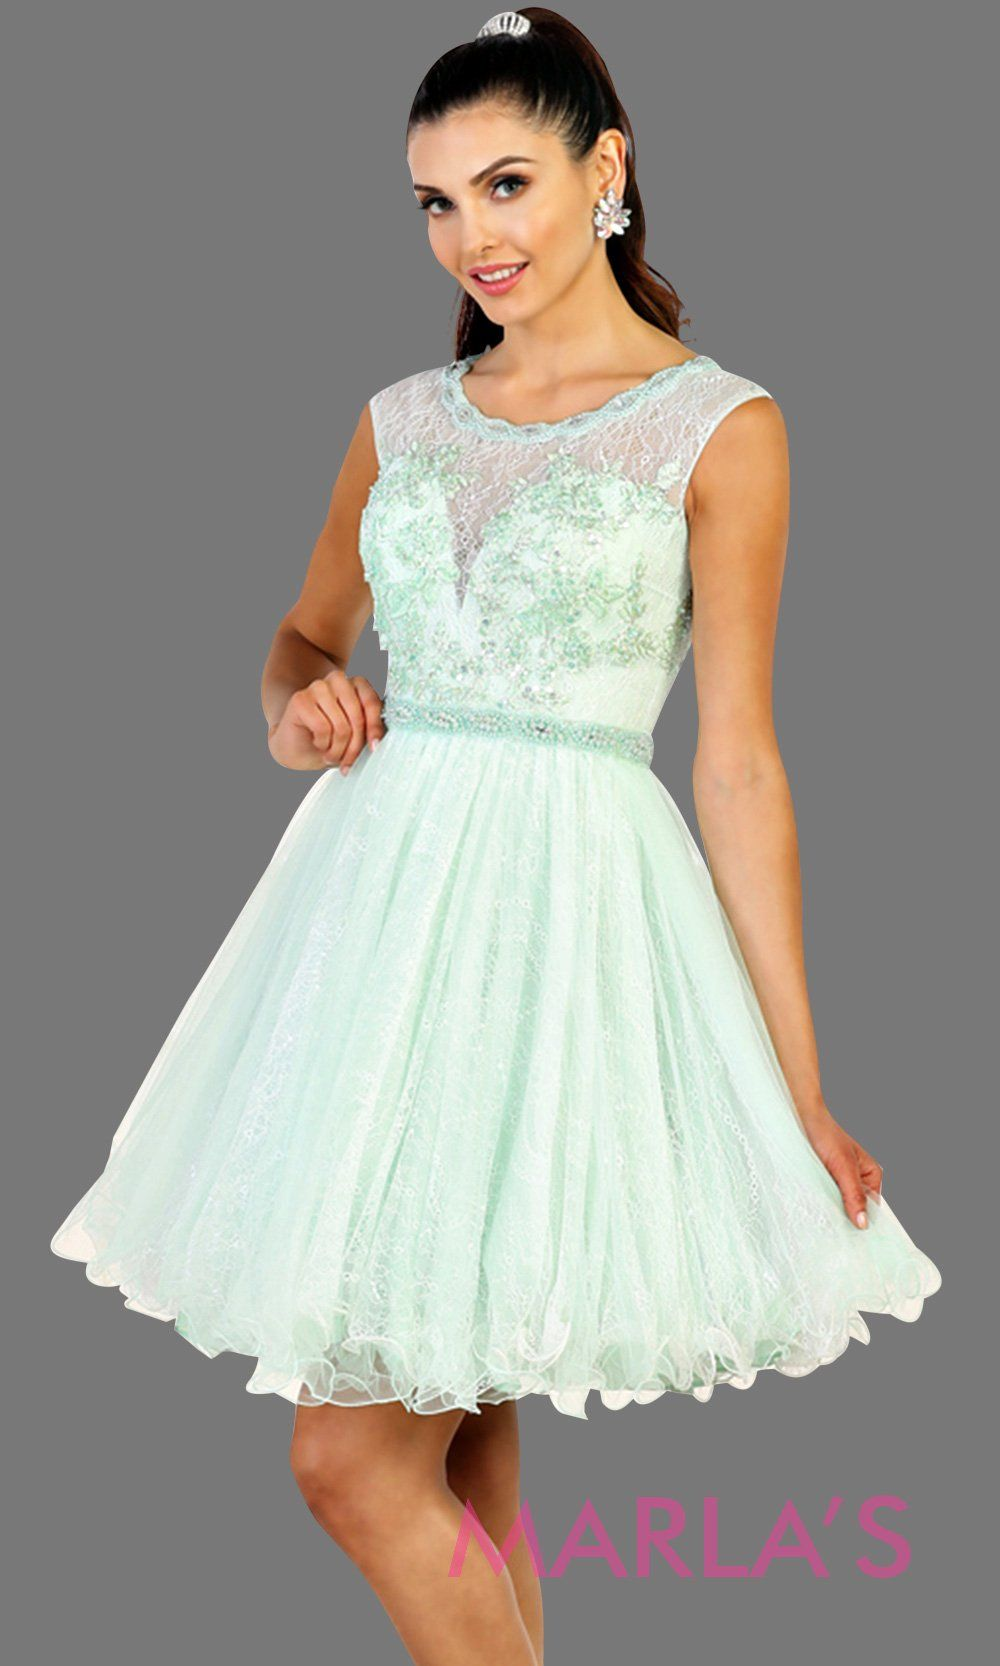 Short high neck puffy mint dress with lace top. Perfect for grade 8 grad, graduation, light green confirmation, short prom,  quinceanera damas, sweet 16, sweet 15, 18th birthday, semi formal, ballerina dress. Available in plus sizes.